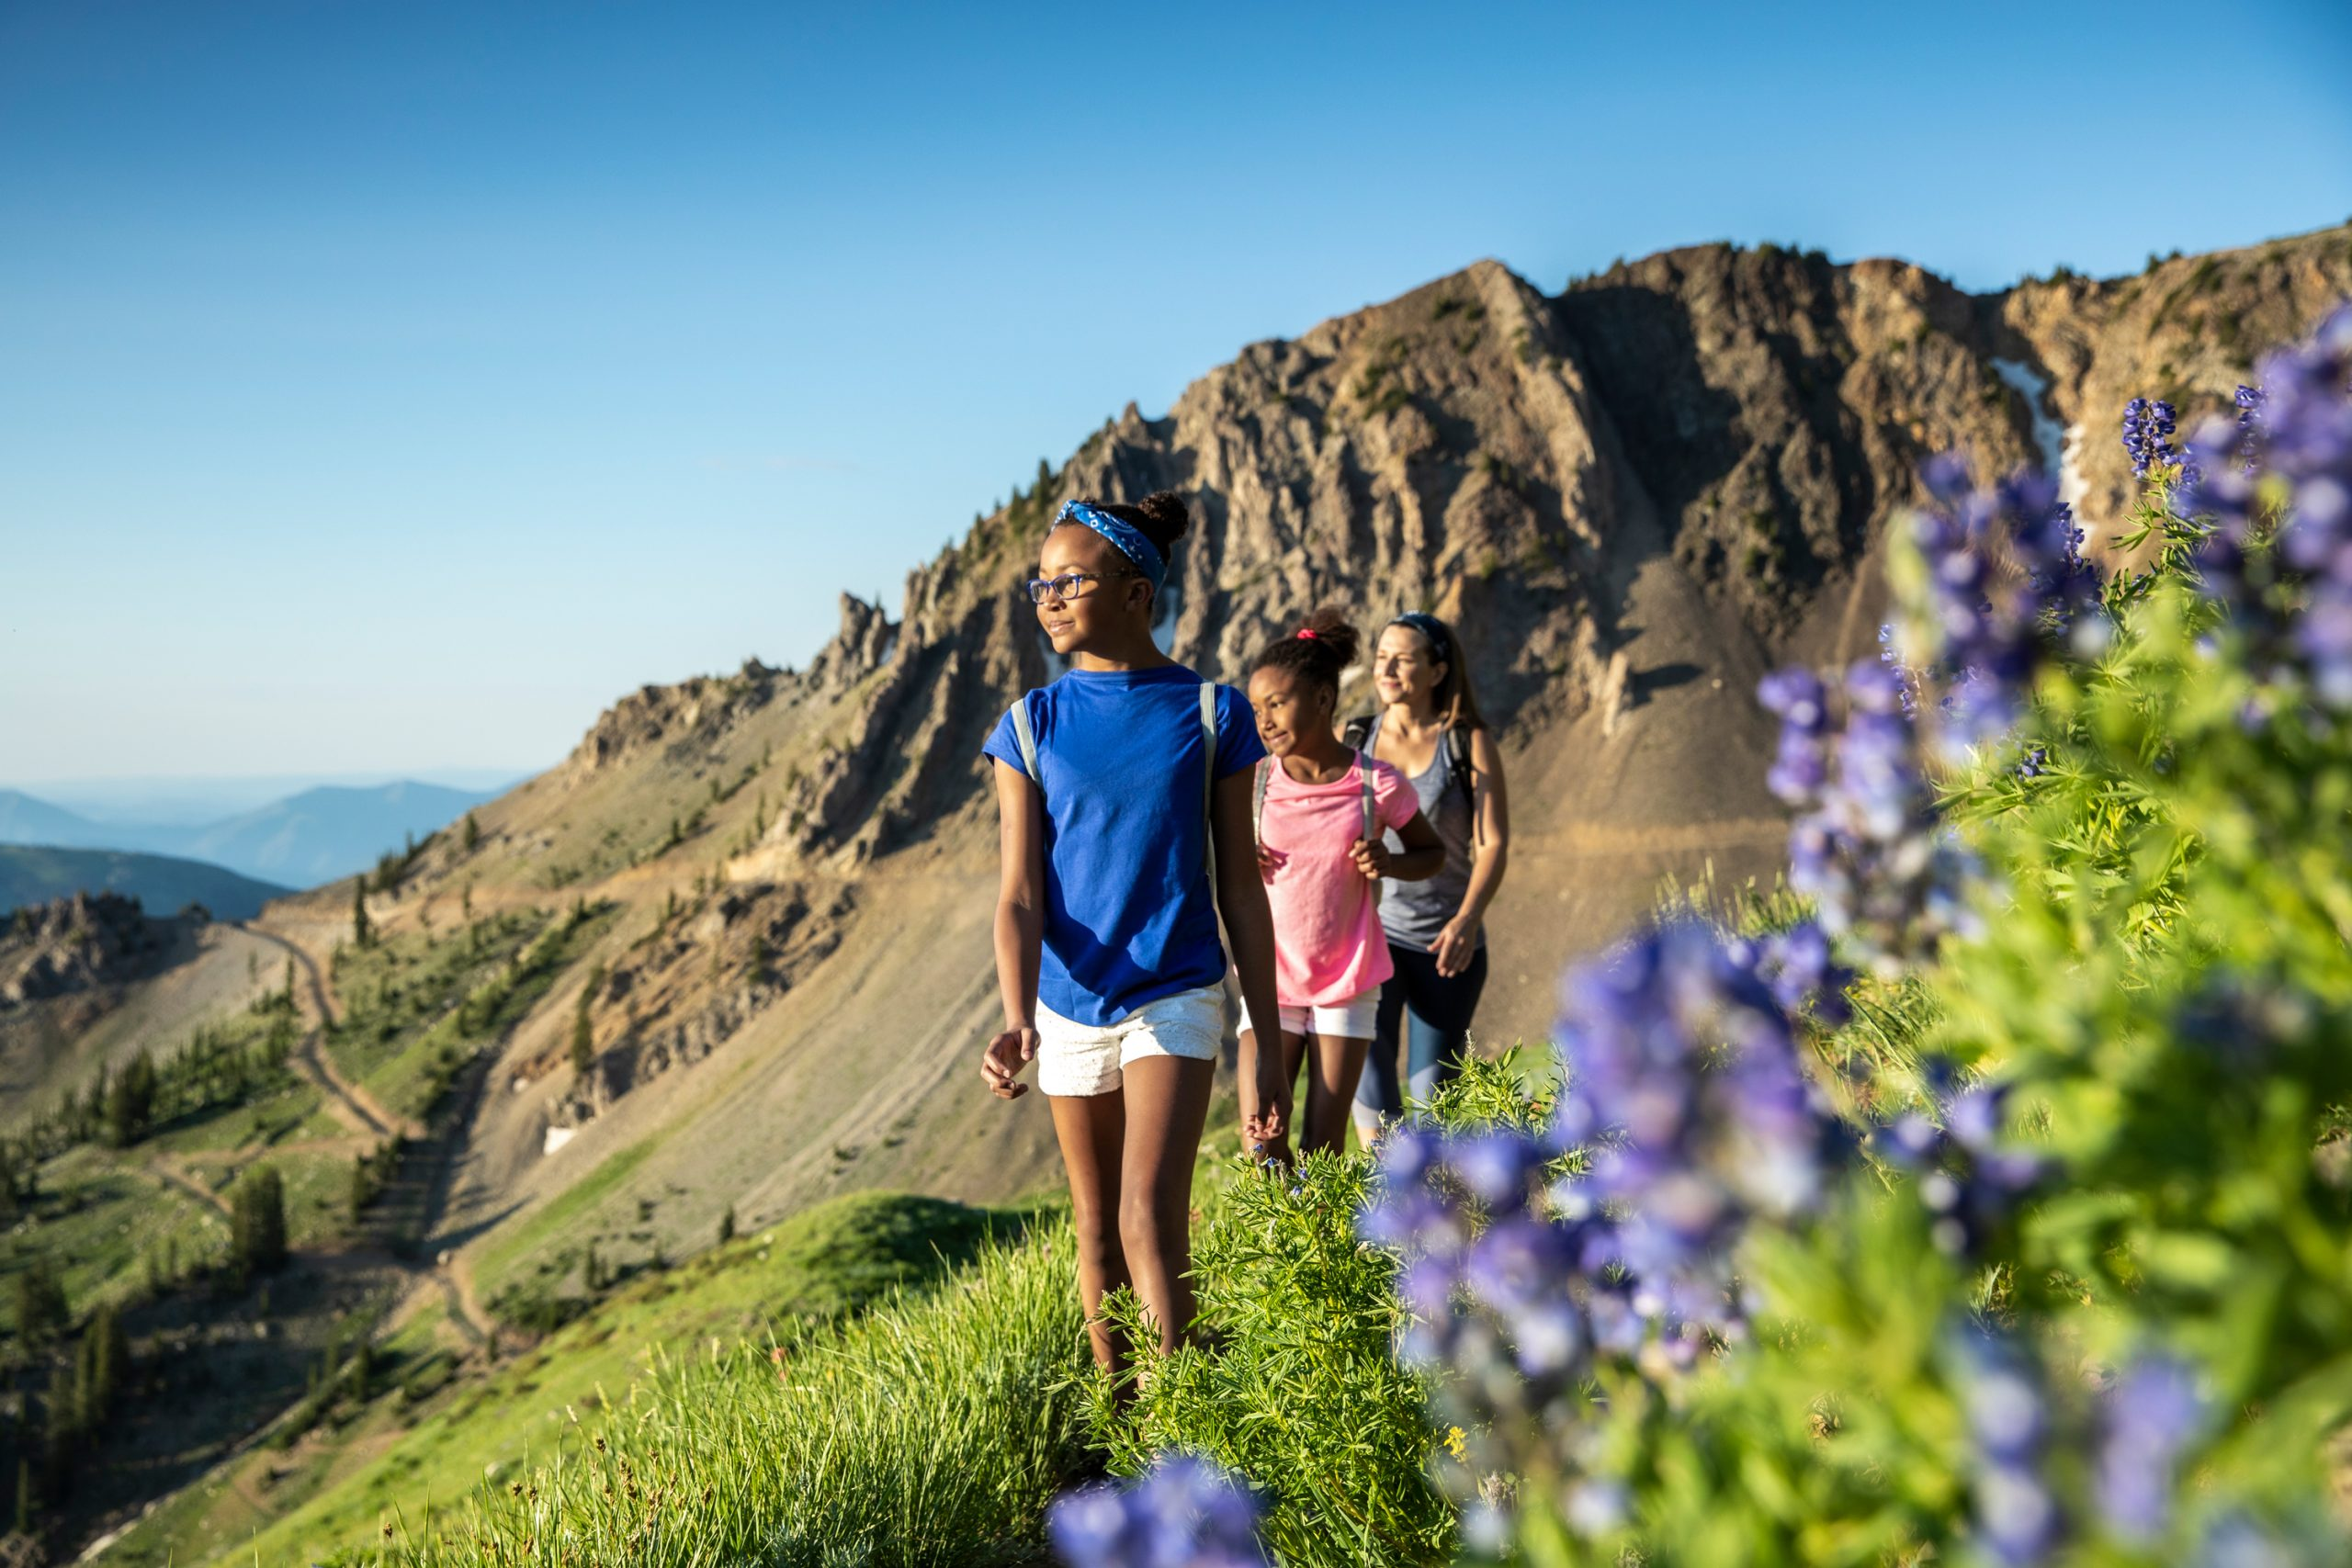 two girls and a woman hiking in a spring trail of flowers